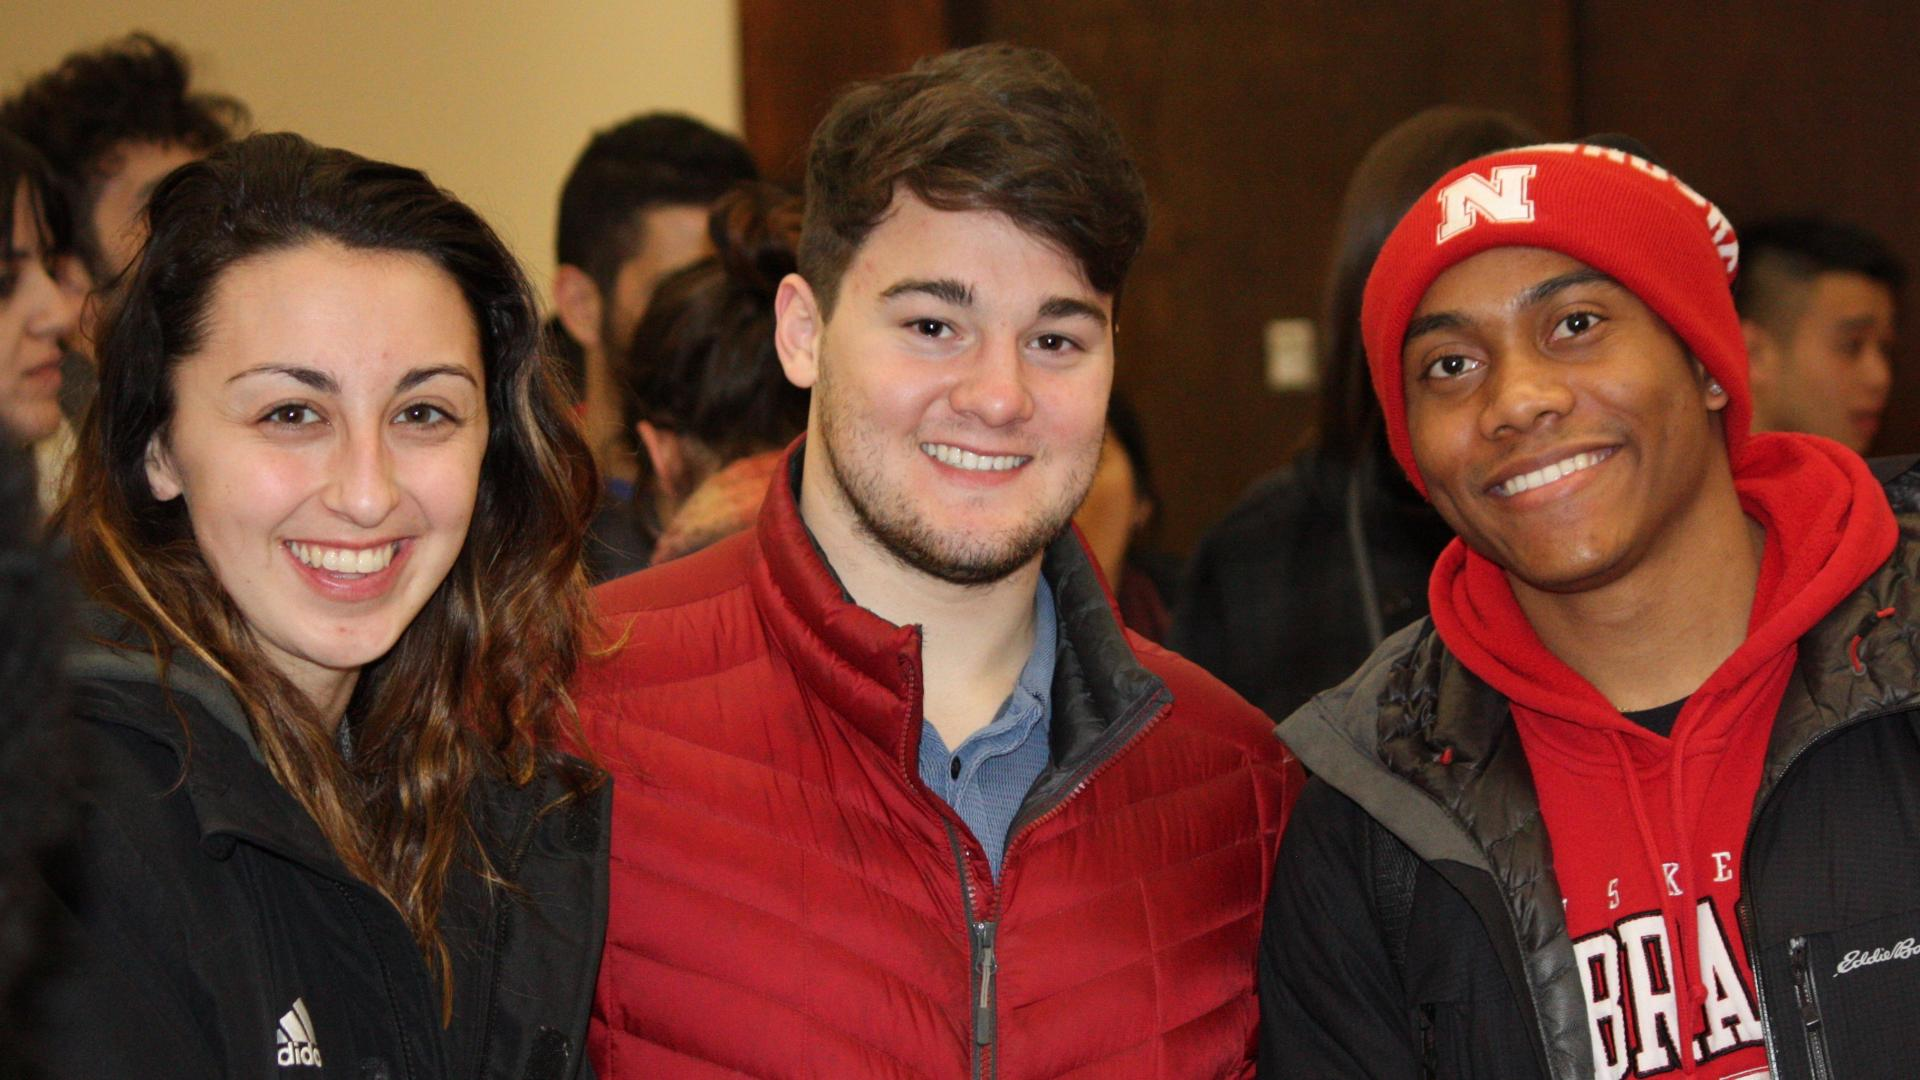 Three students attend the Lunar New Year Celebration at University of Nebraska-Lincoln